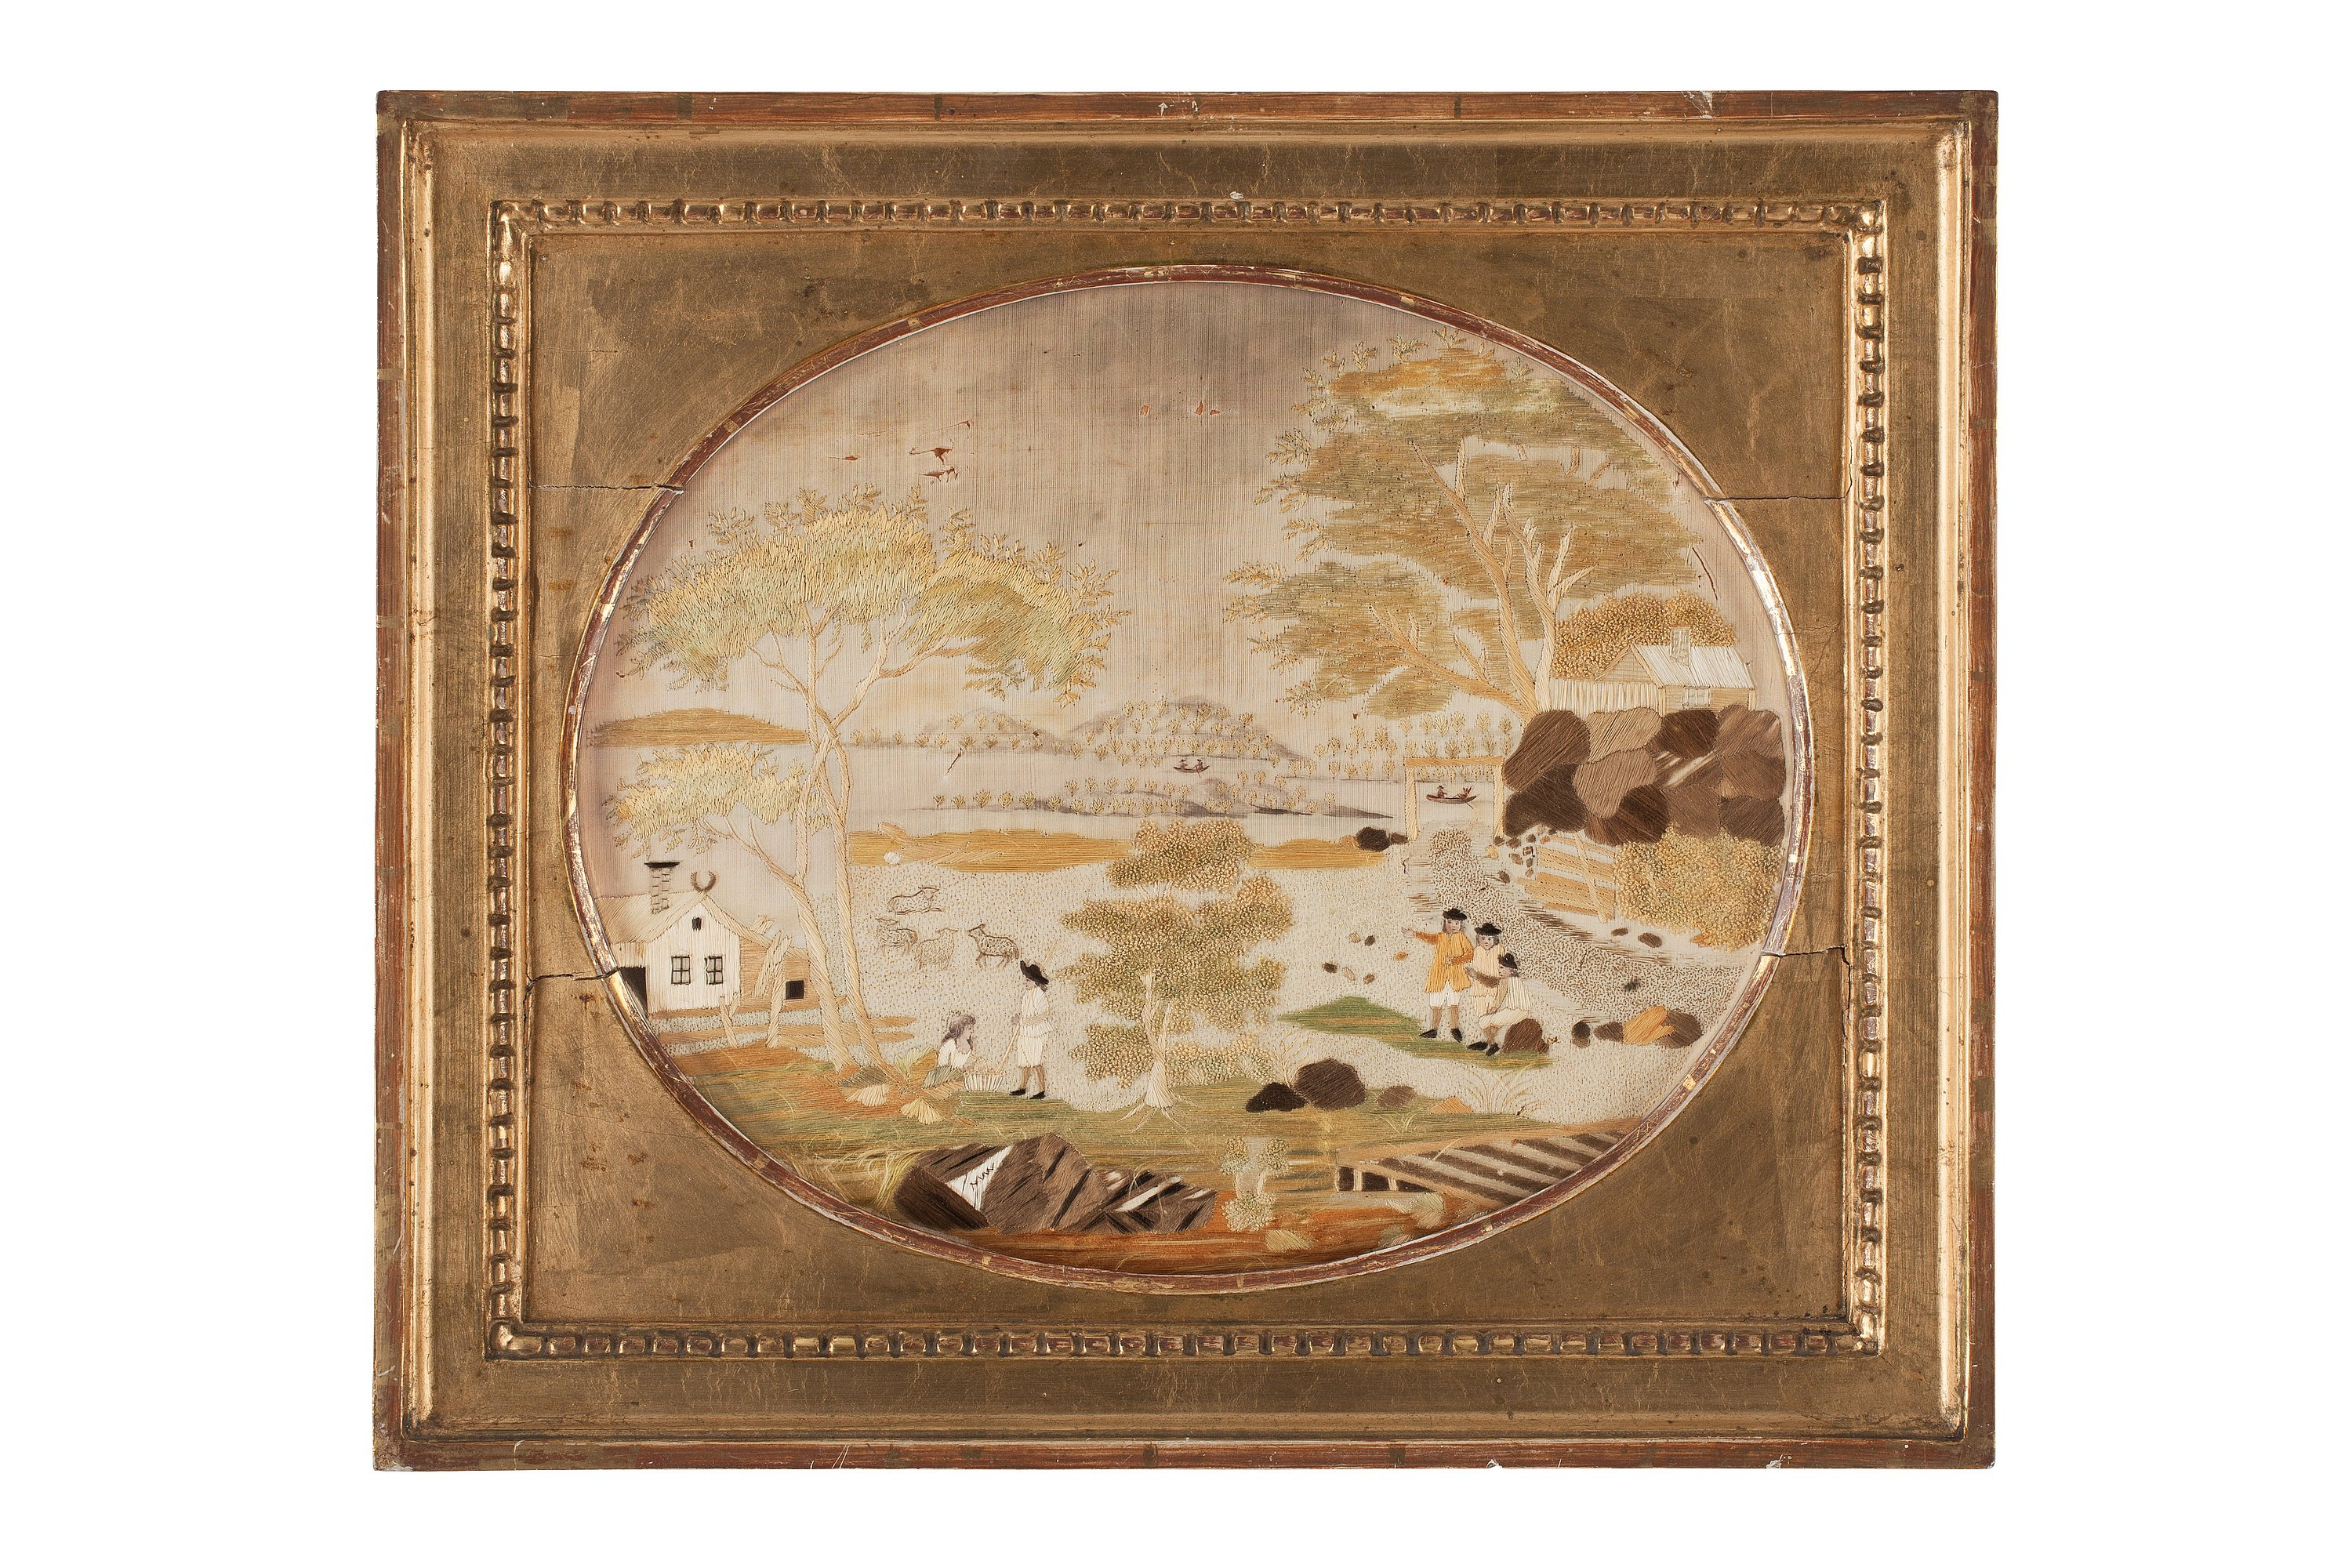 Embroidery Sweden Around 1800 265 X 32 Cm A Frame From The Time